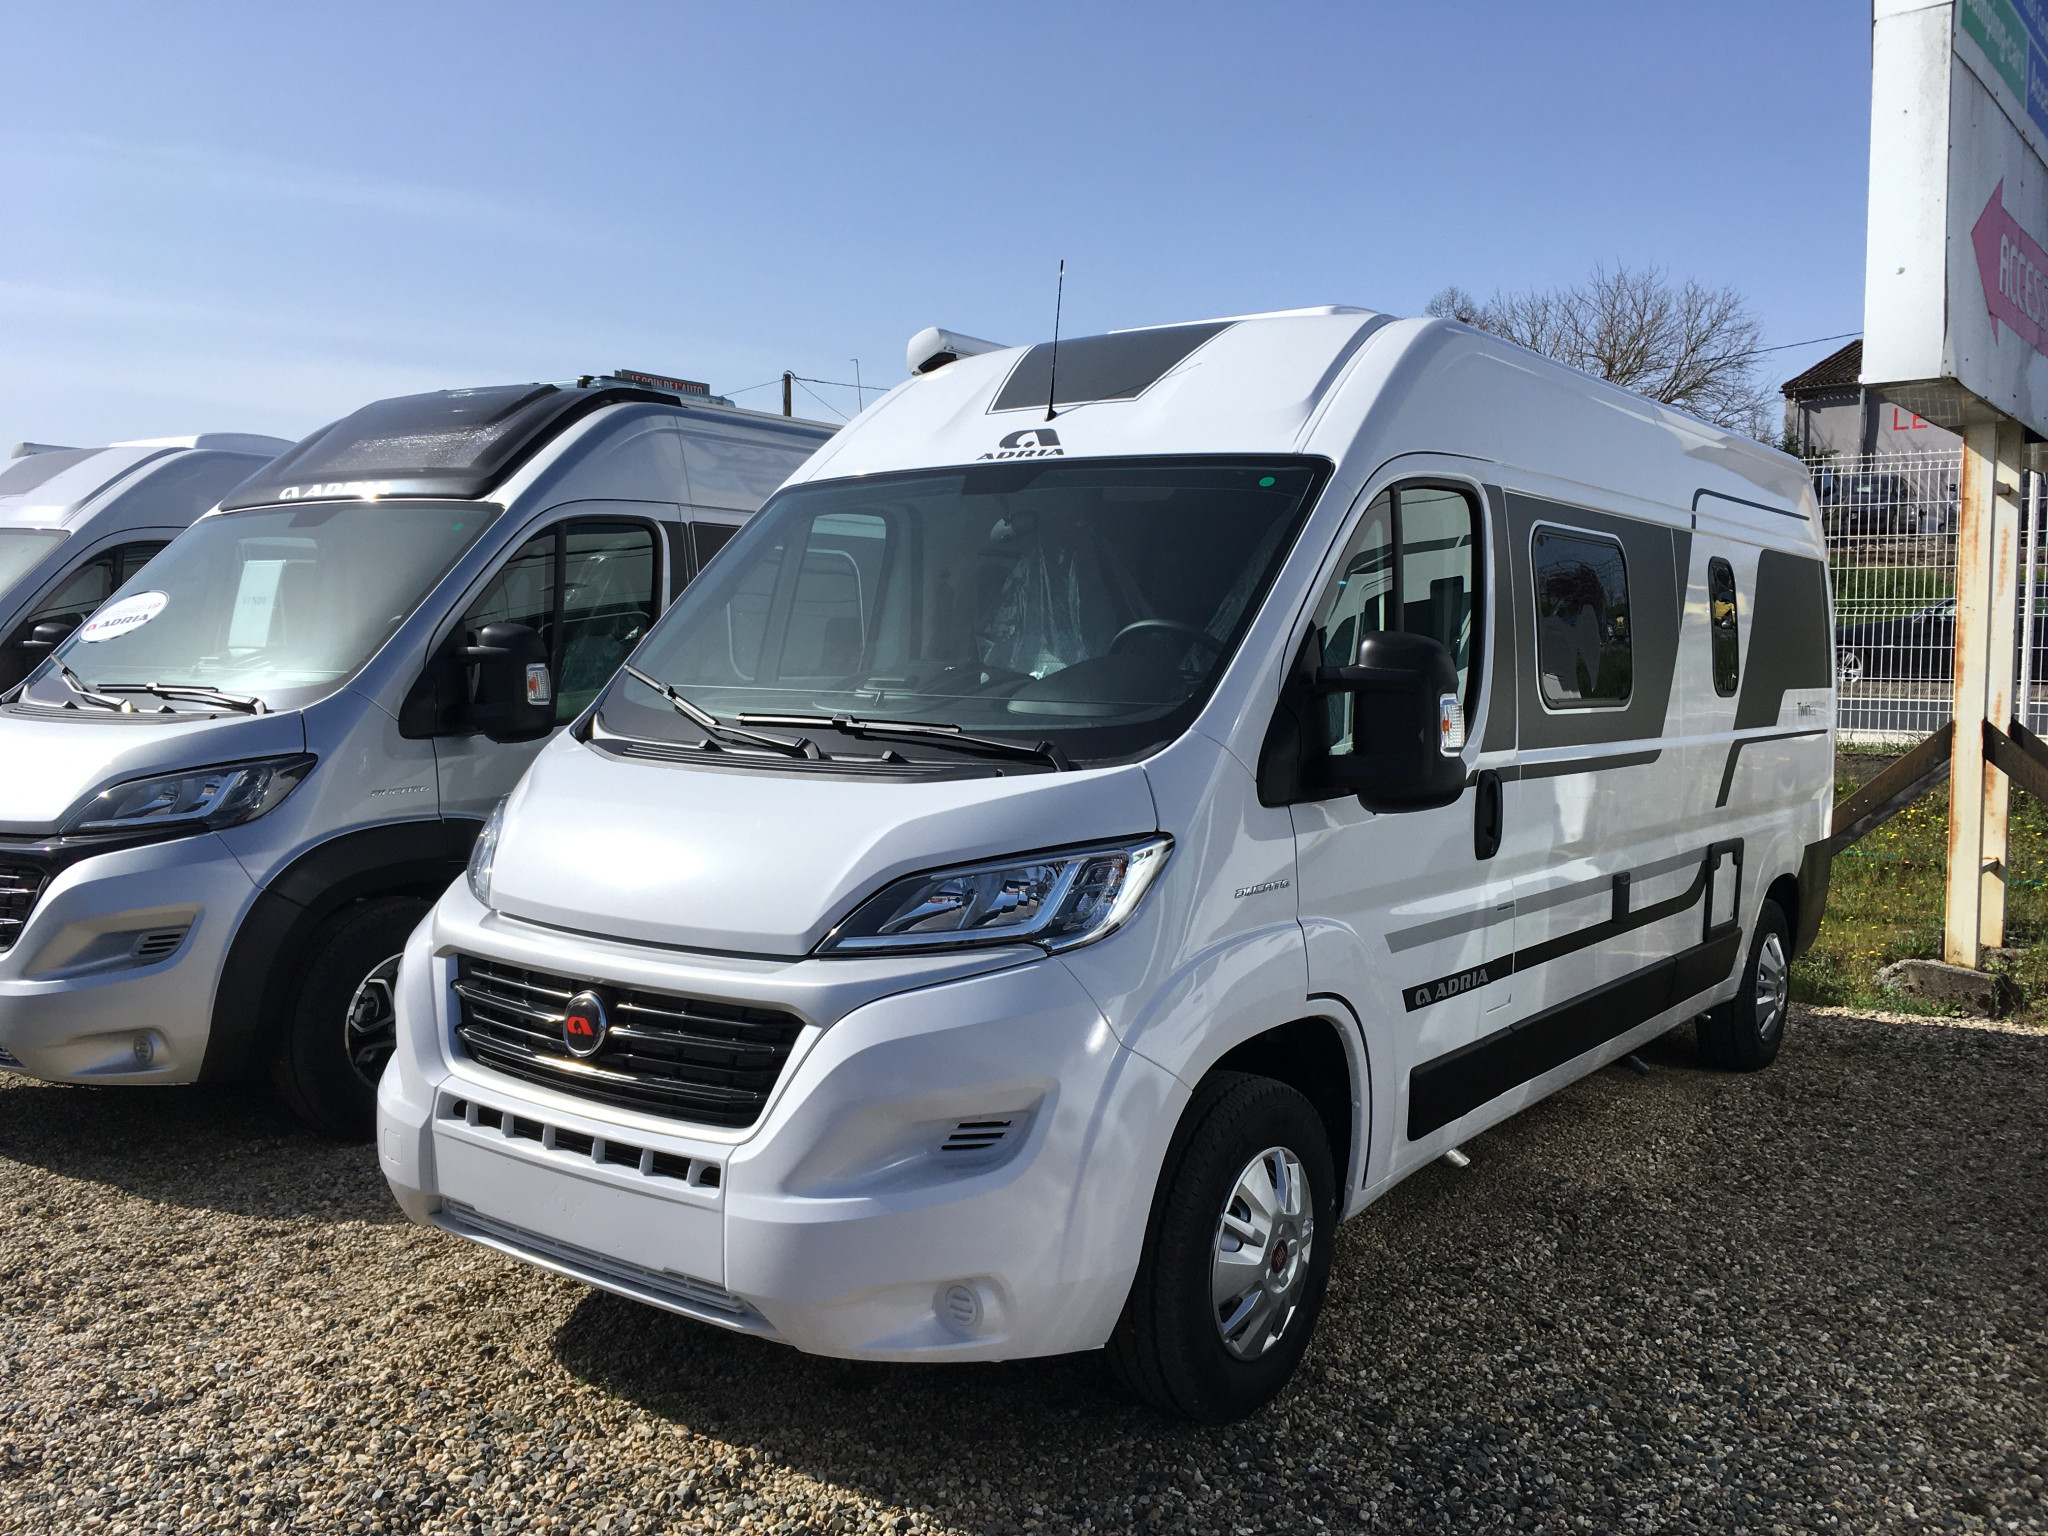 Camping-car ADRIA TWIN PLUS 600 SPB FAMILY